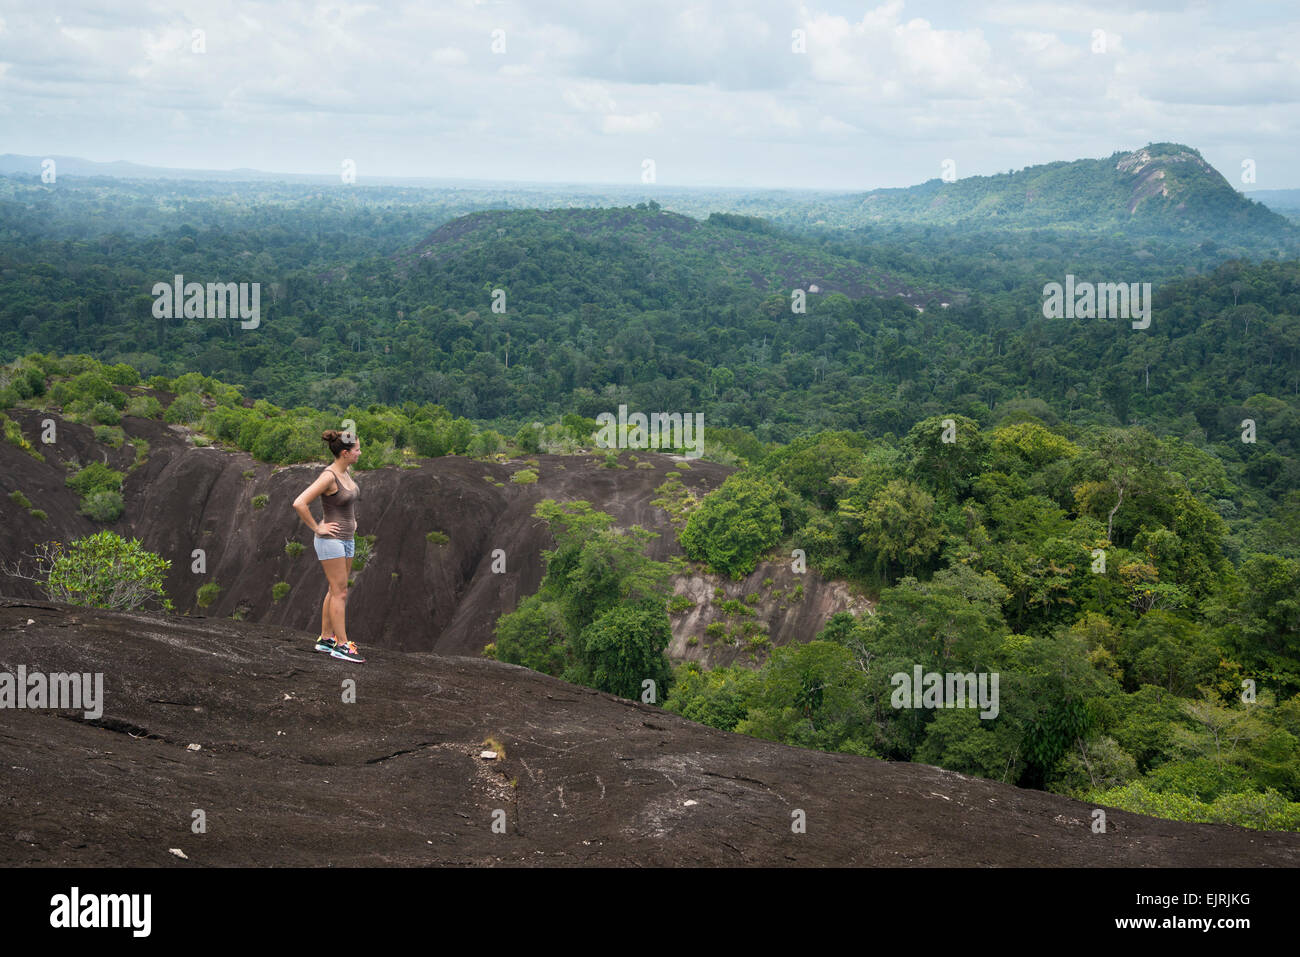 Hiker on Voltzberg Mountain, Central Suriname Nature Reserve, Suriname - Stock Image